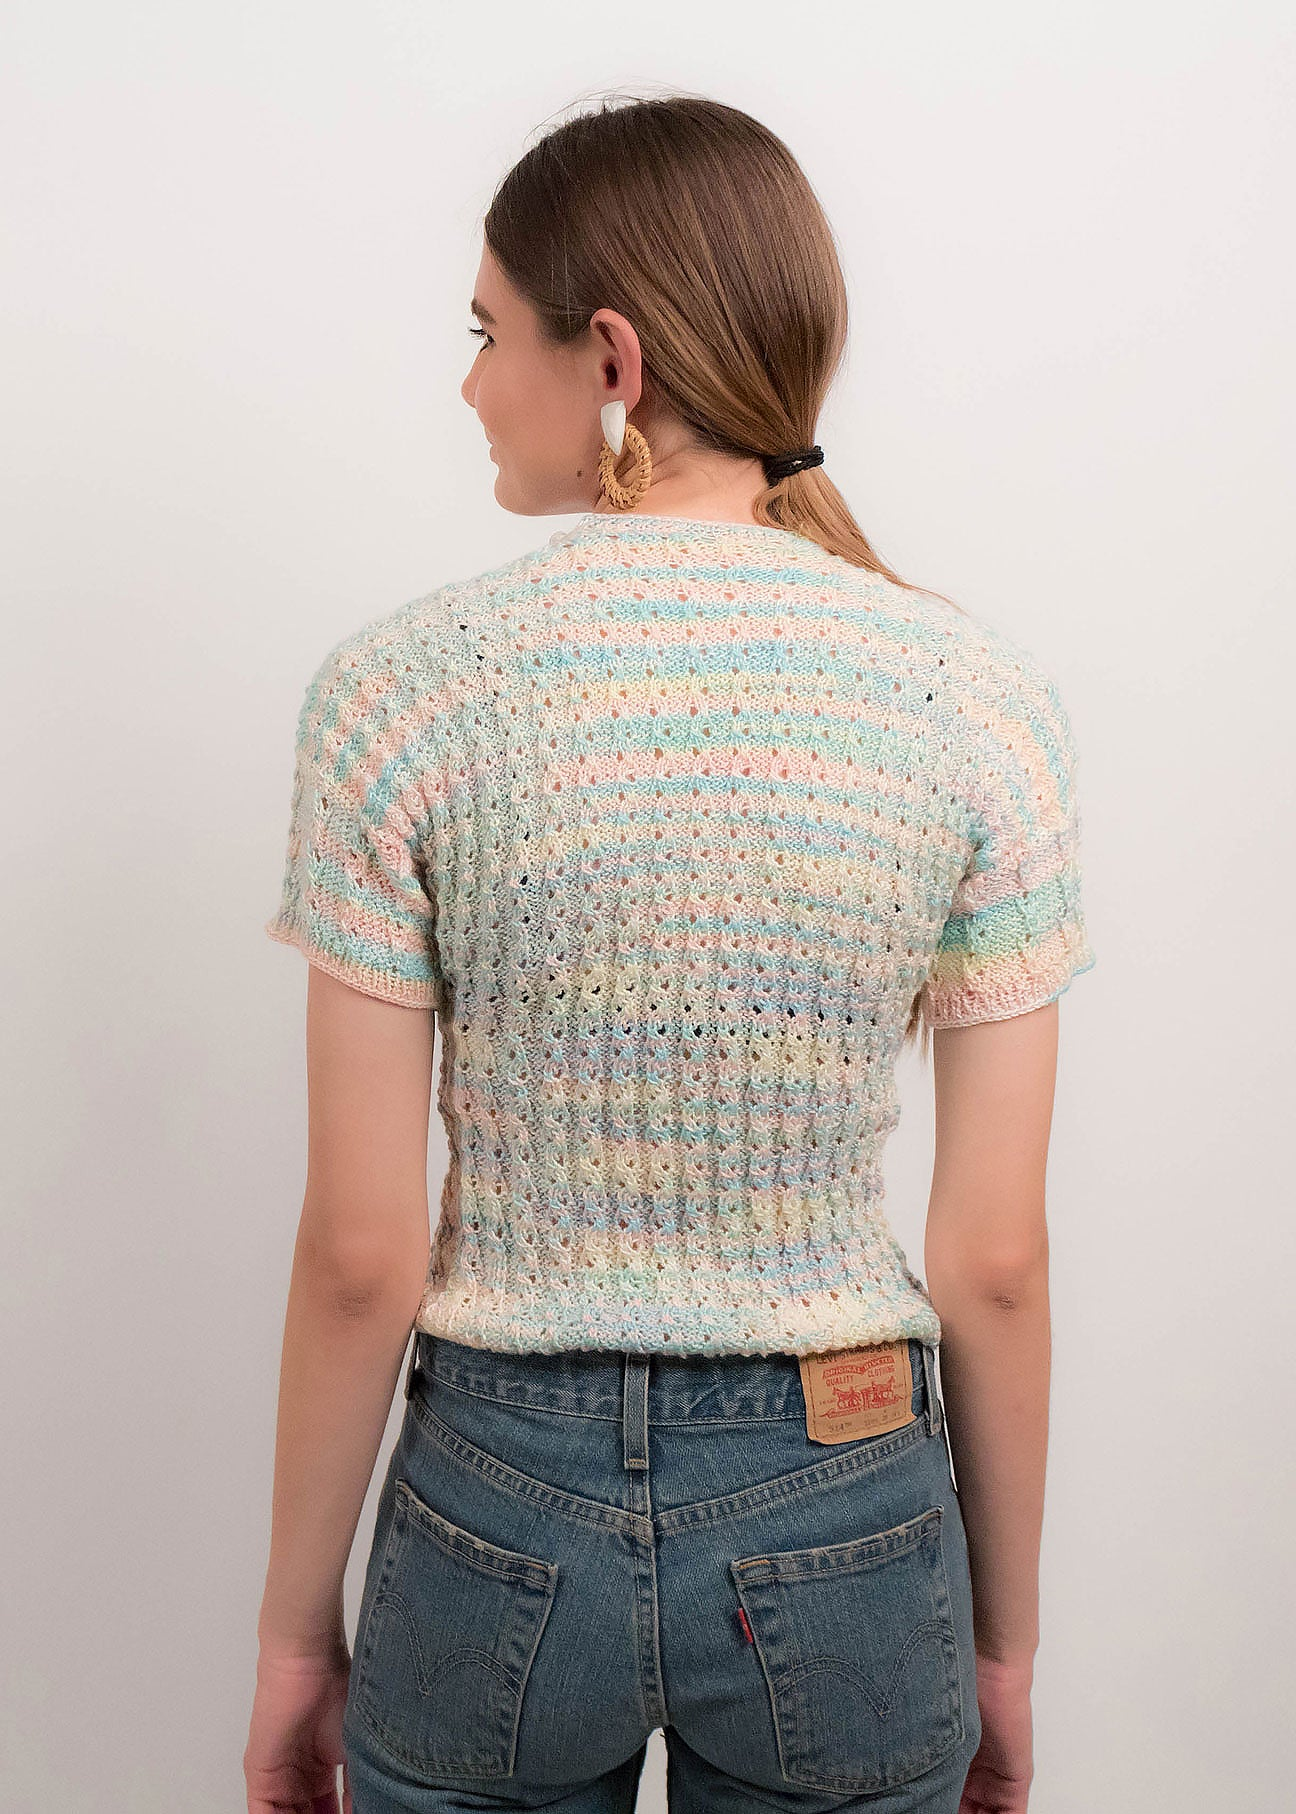 70s Hand Knit Crochet Top